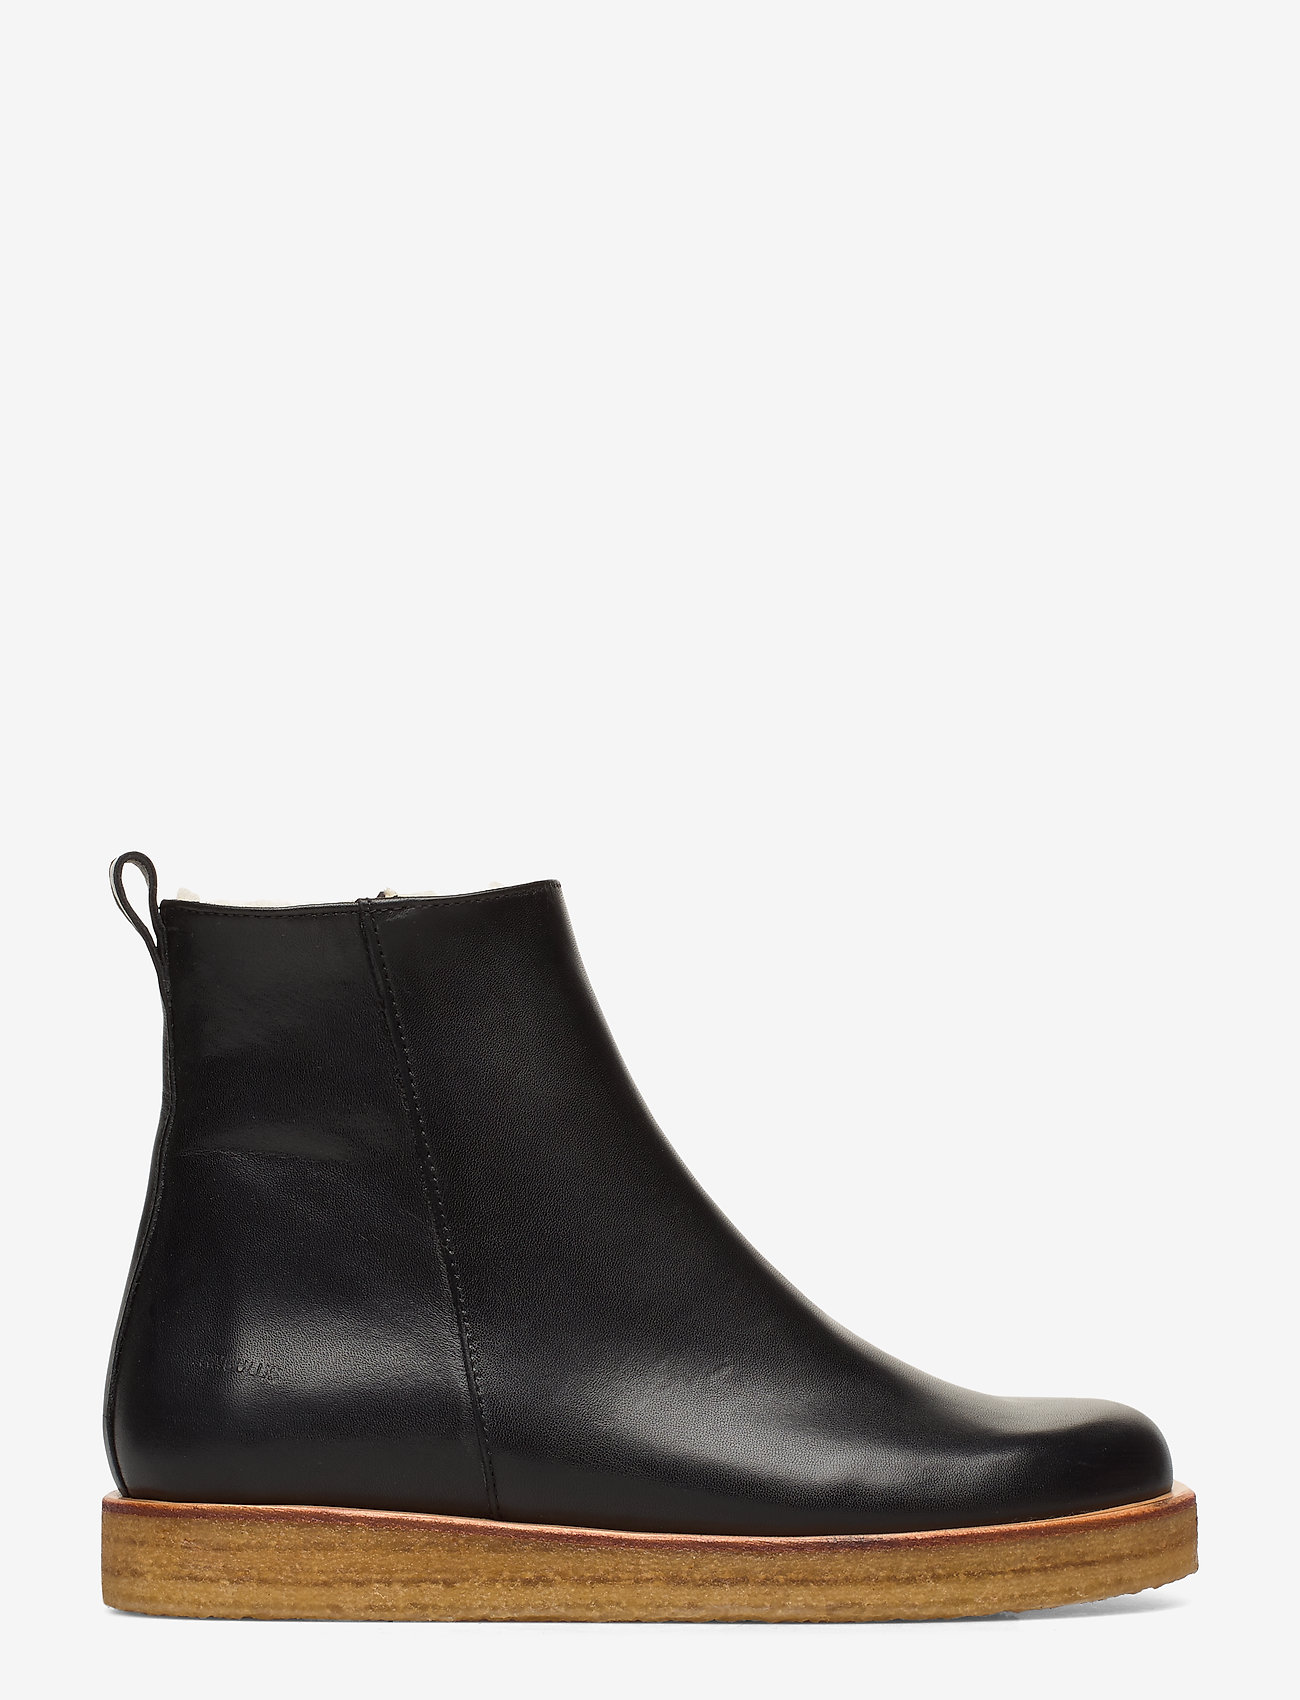 ANGULUS - Boots - flat - with laces - flade ankelstøvler - 1604 black - 1